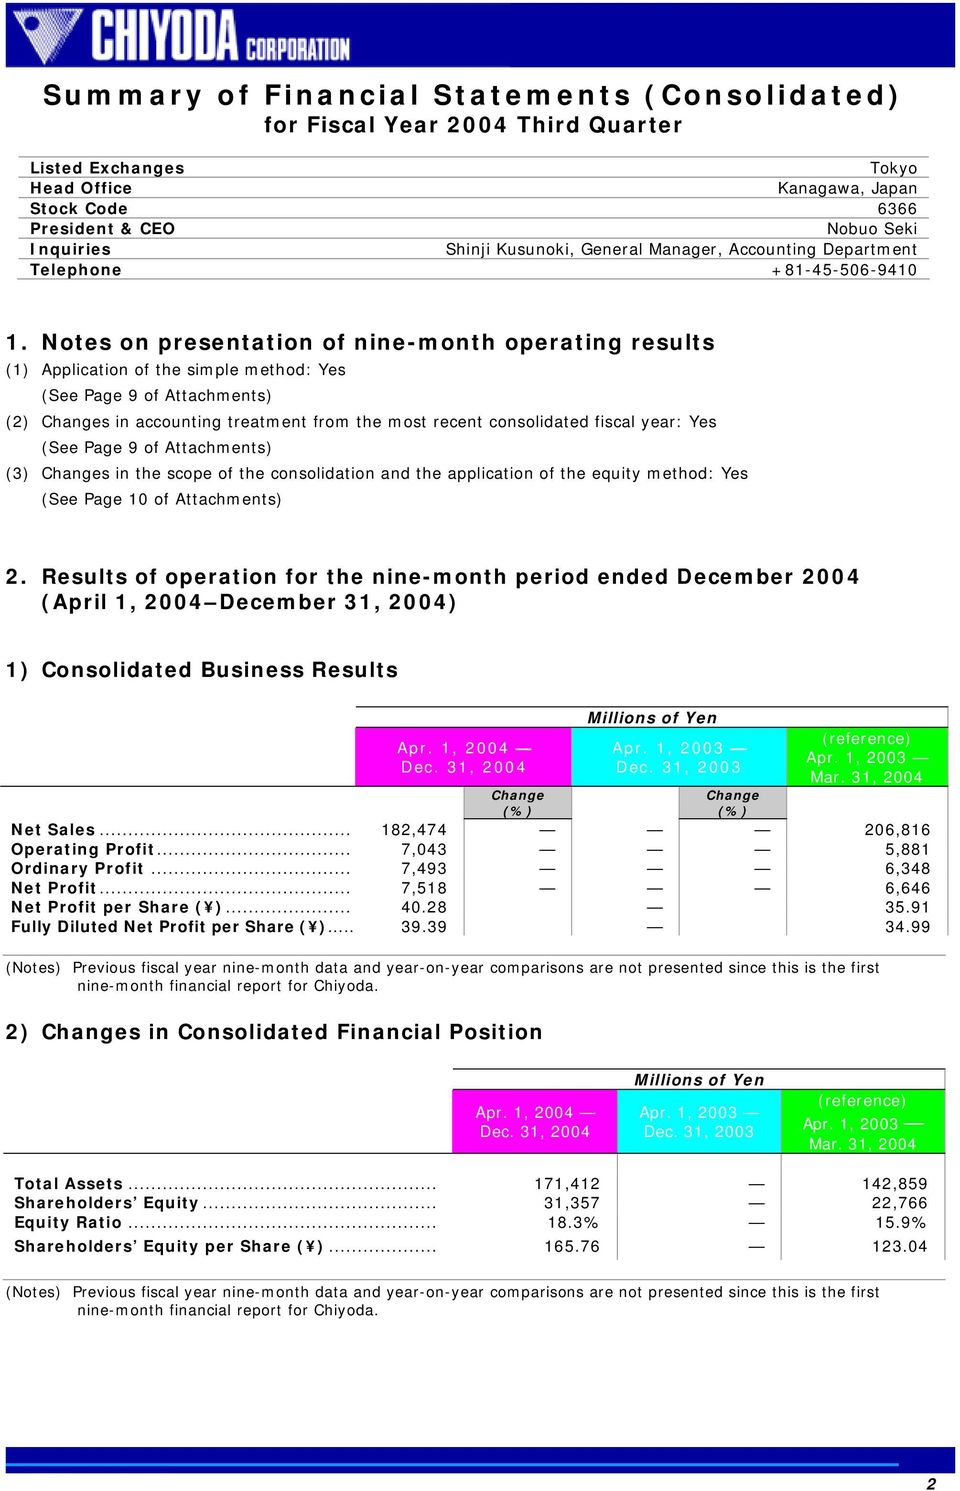 Notes on presentation of nine-month operating results (1) Application of the simple method: Yes (See Page 9 of Attachments) (2) Changes in accounting treatment from the most recent consolidated